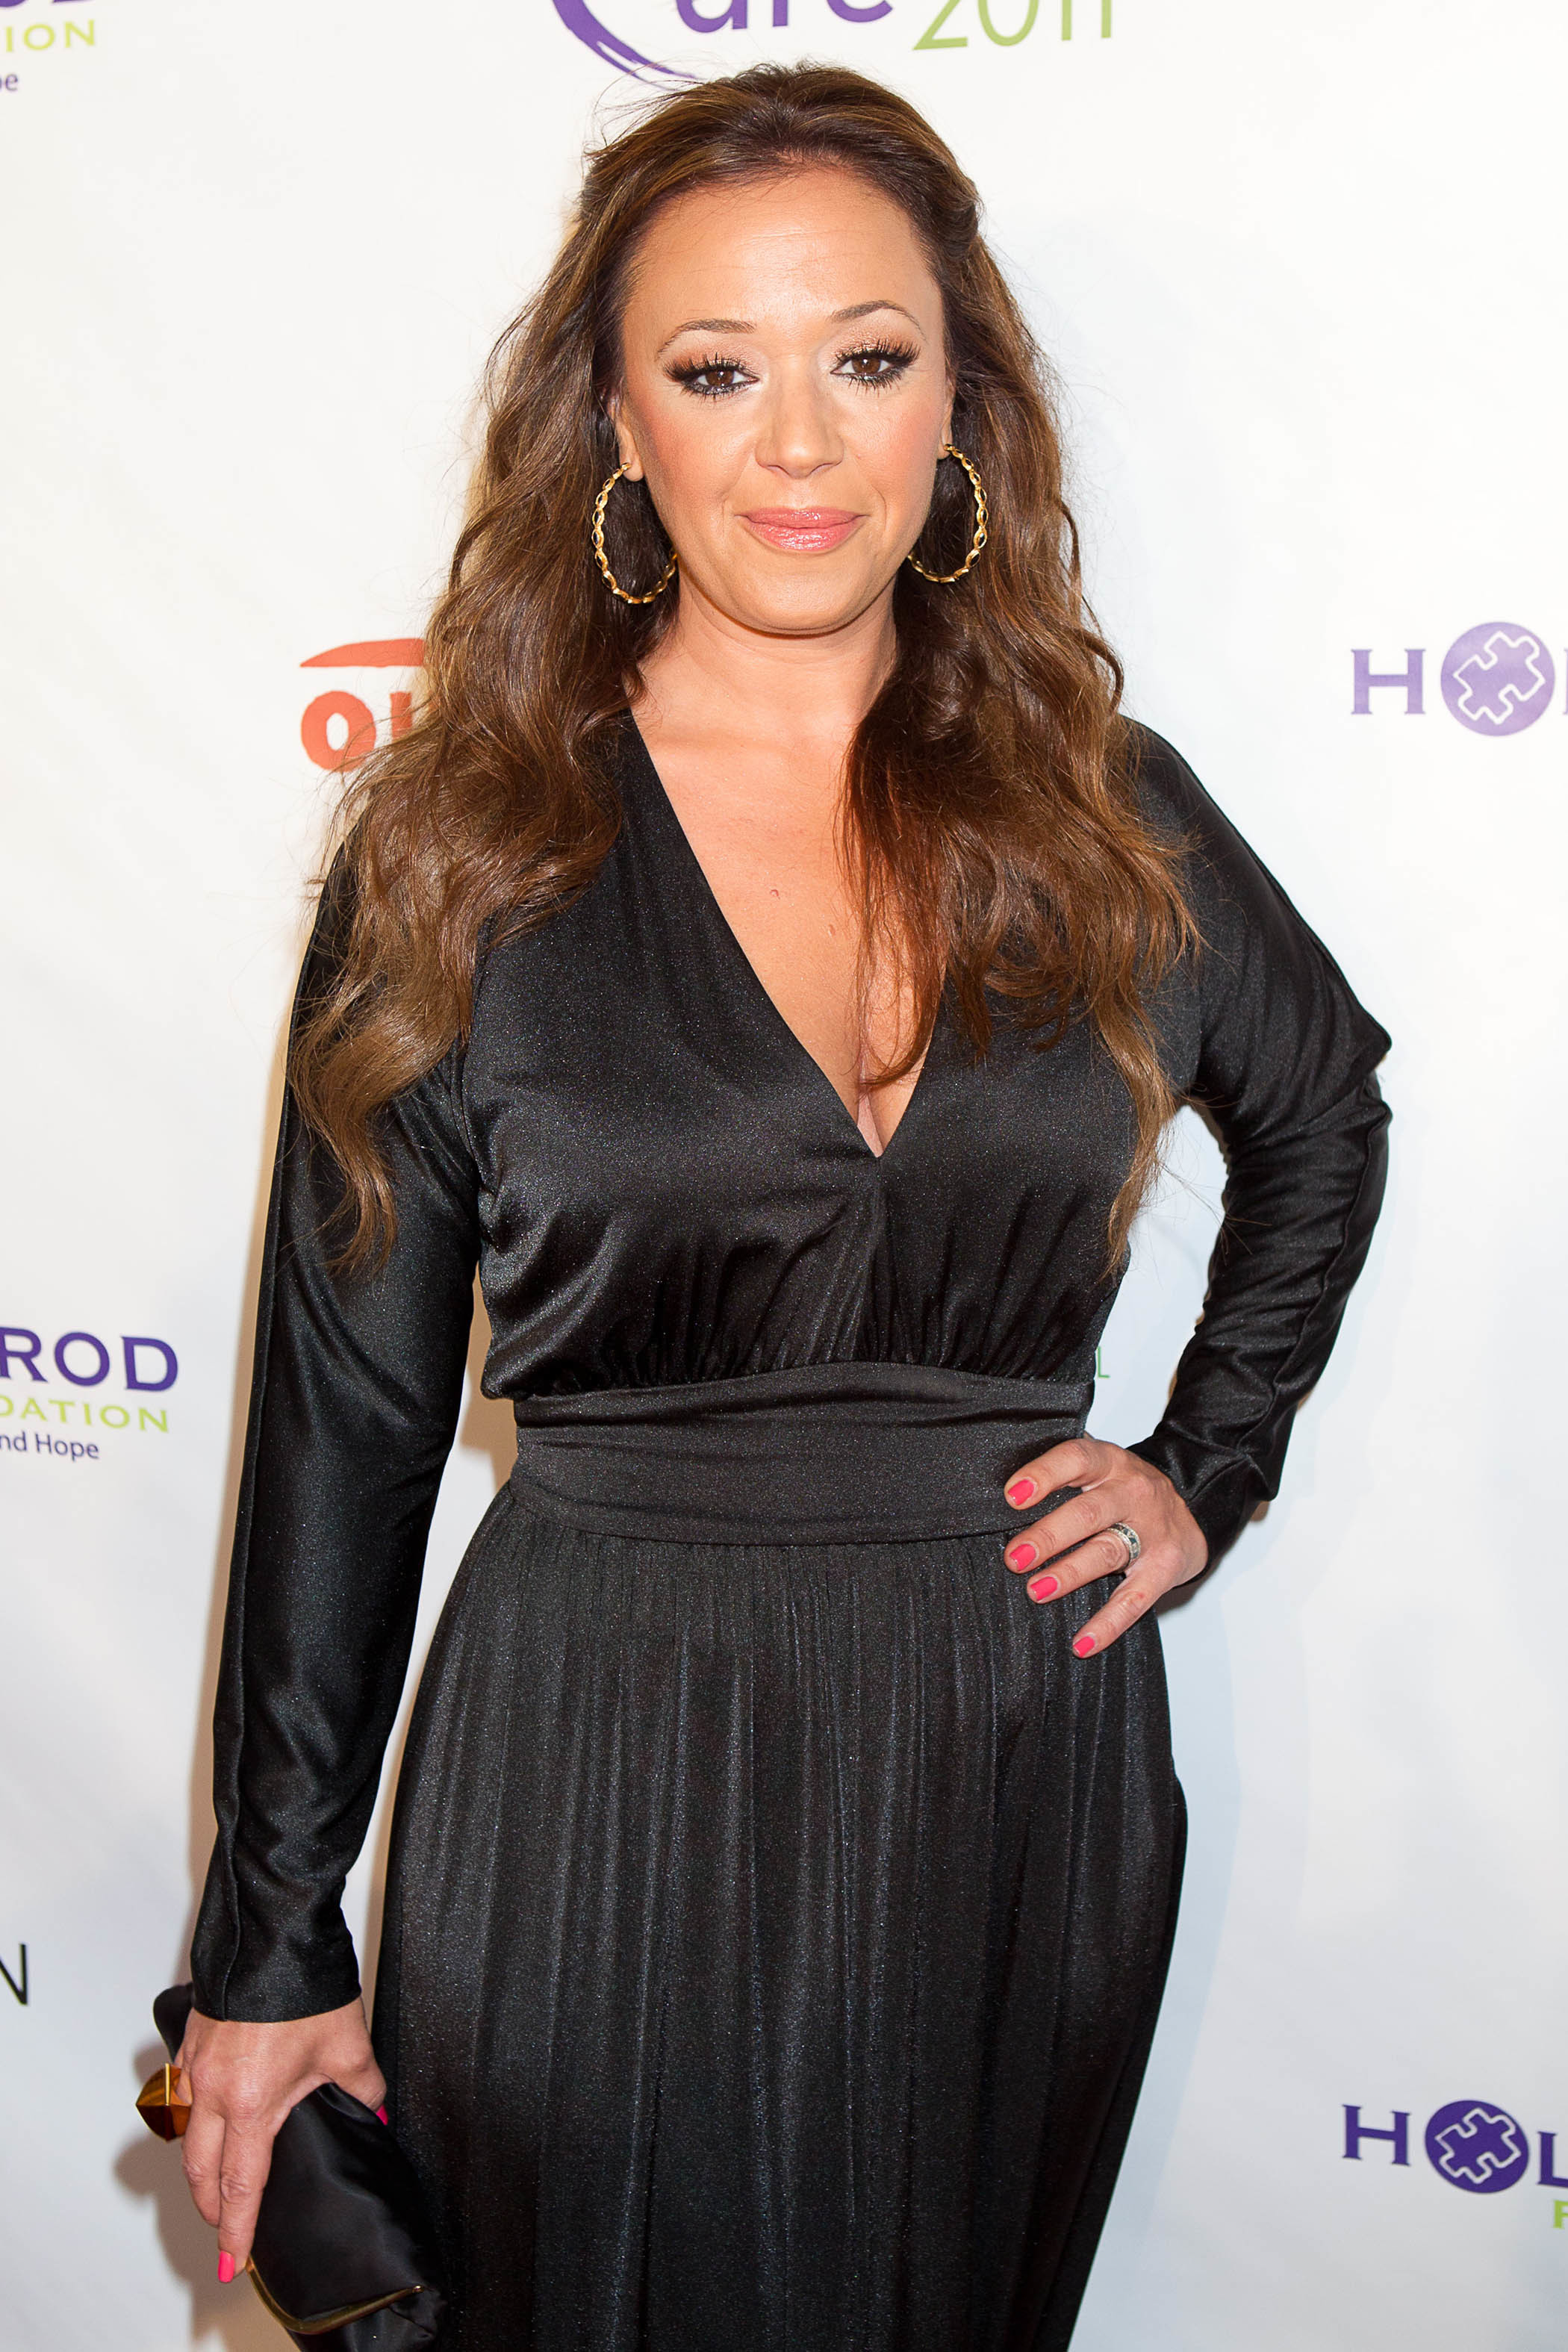 Leah Remini is reportedly producing a show about Scientology